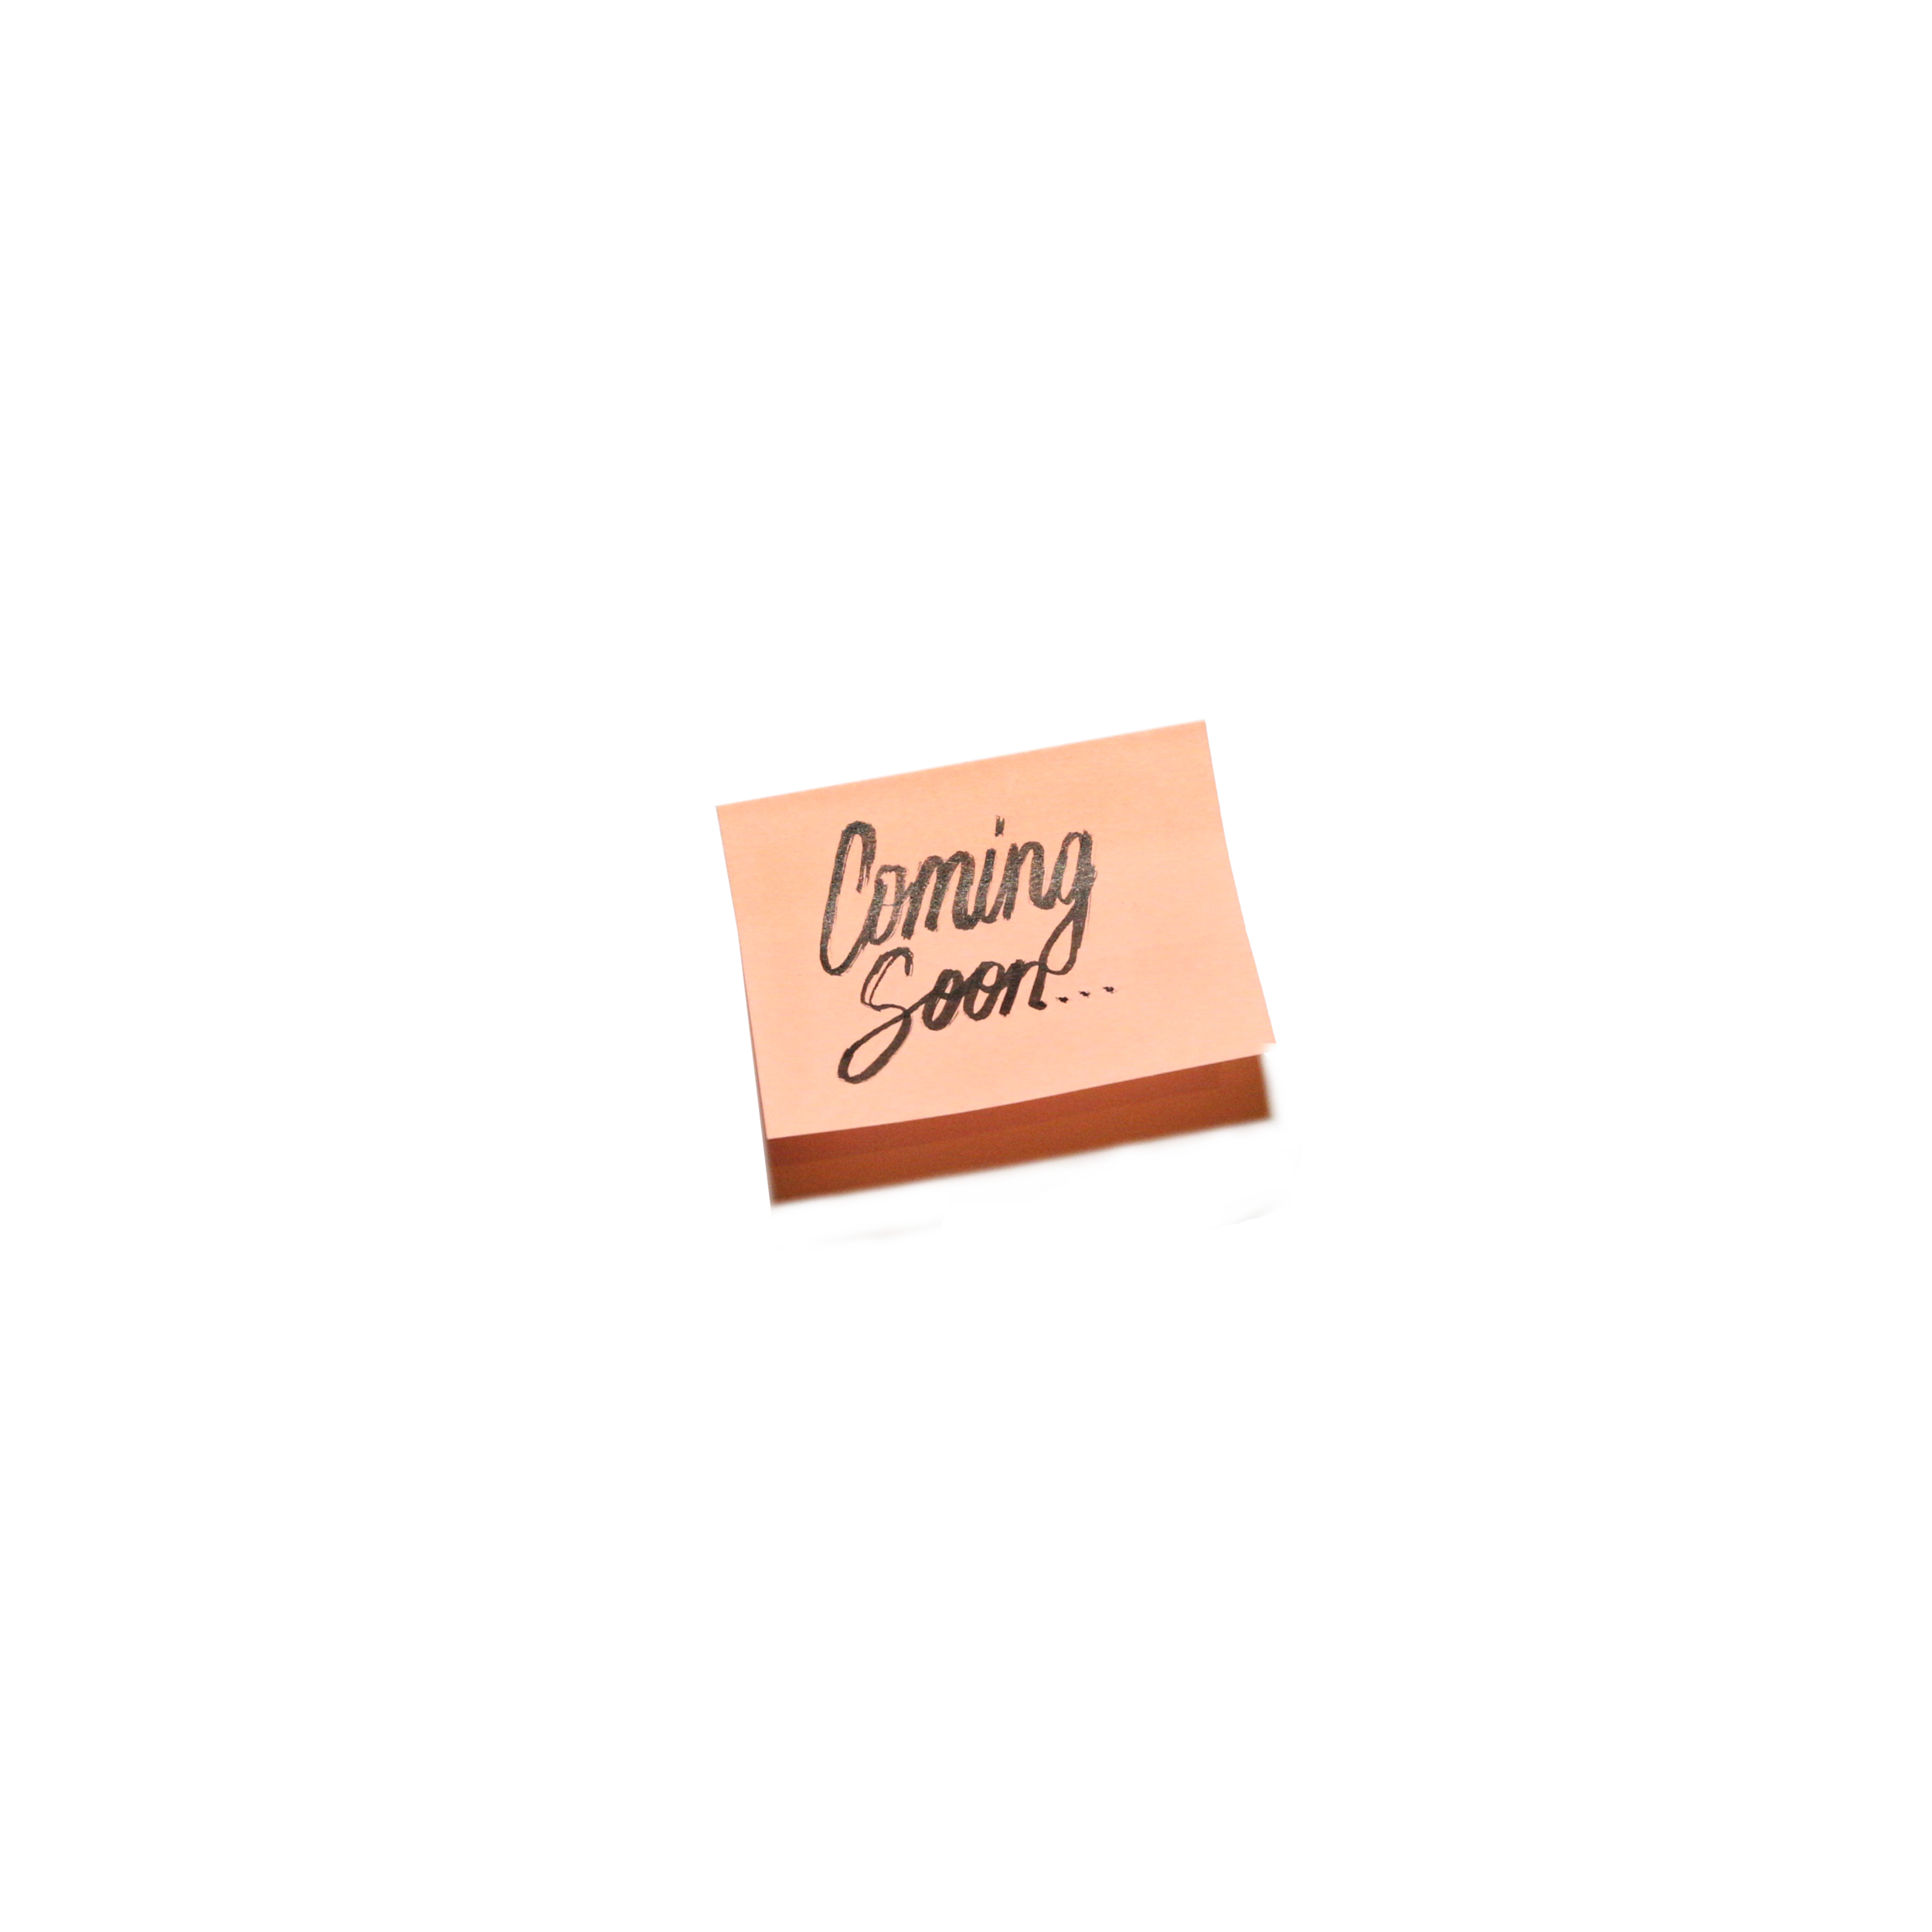 COMING SOON POST-IT.png